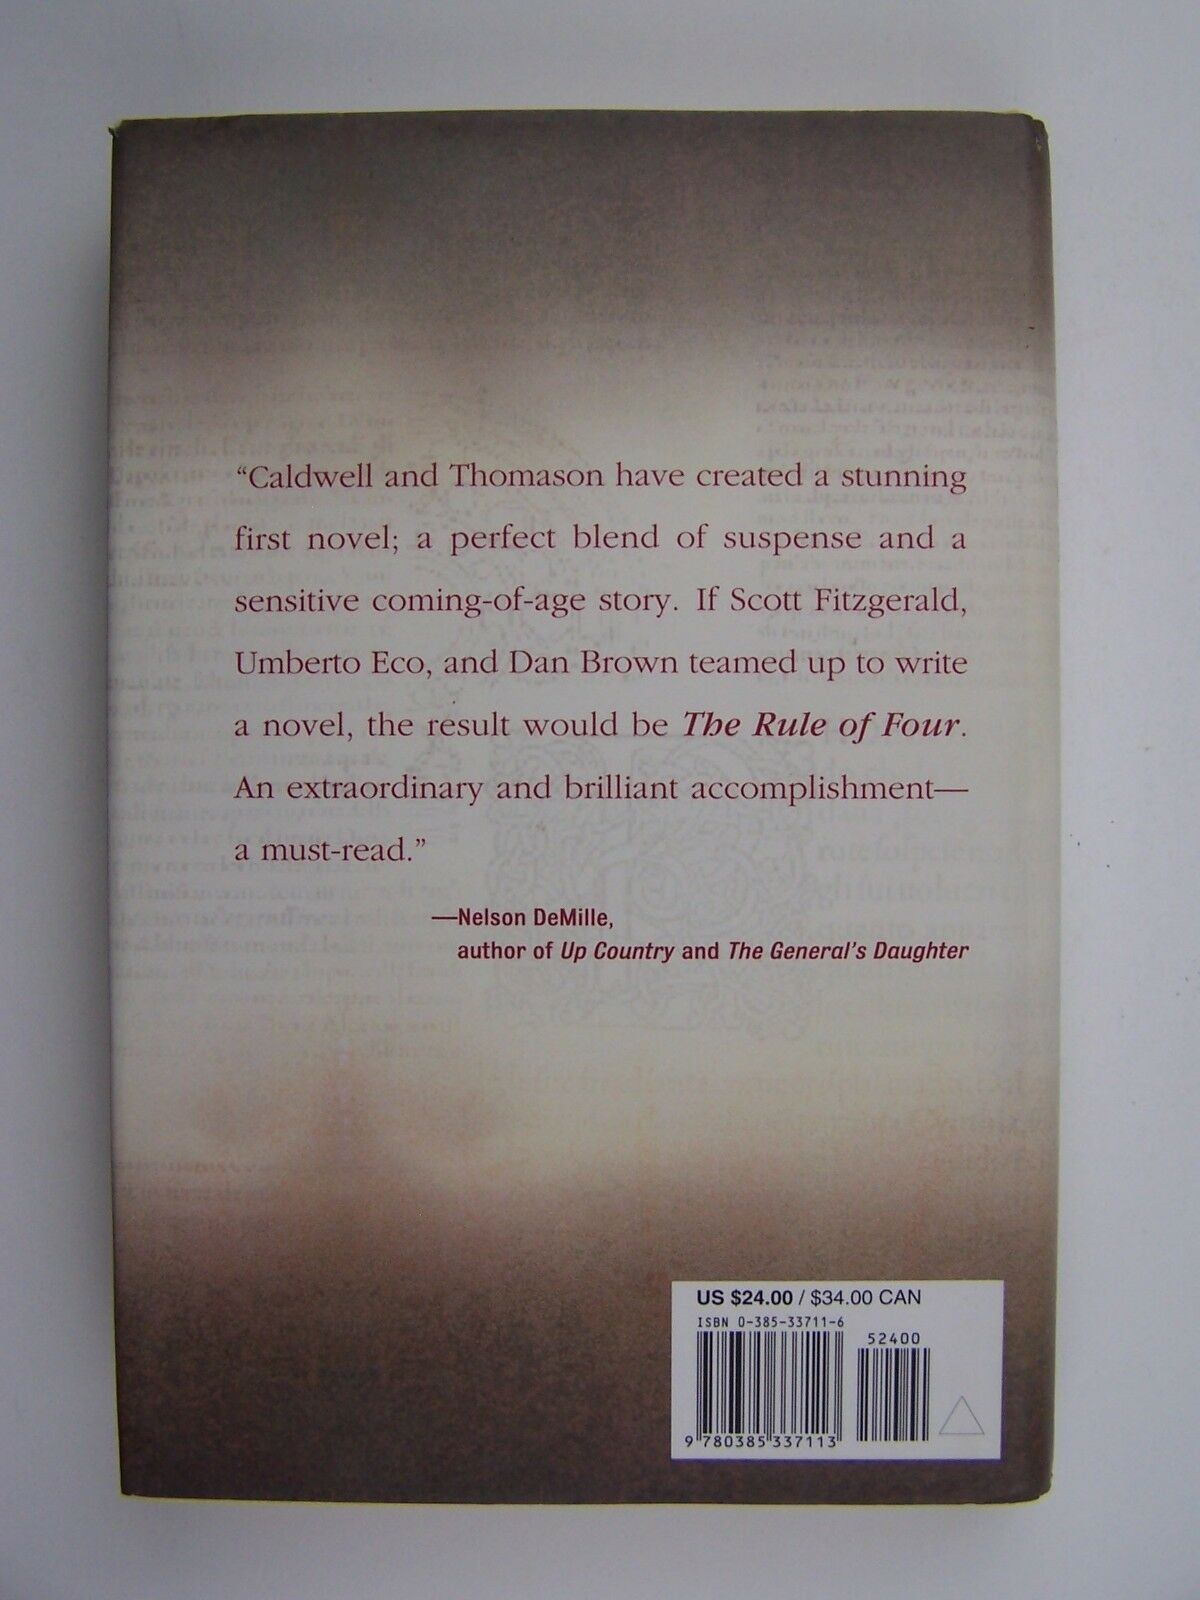 The Rule of Four Hardcover by Ian Caldwell, Dustin Thom